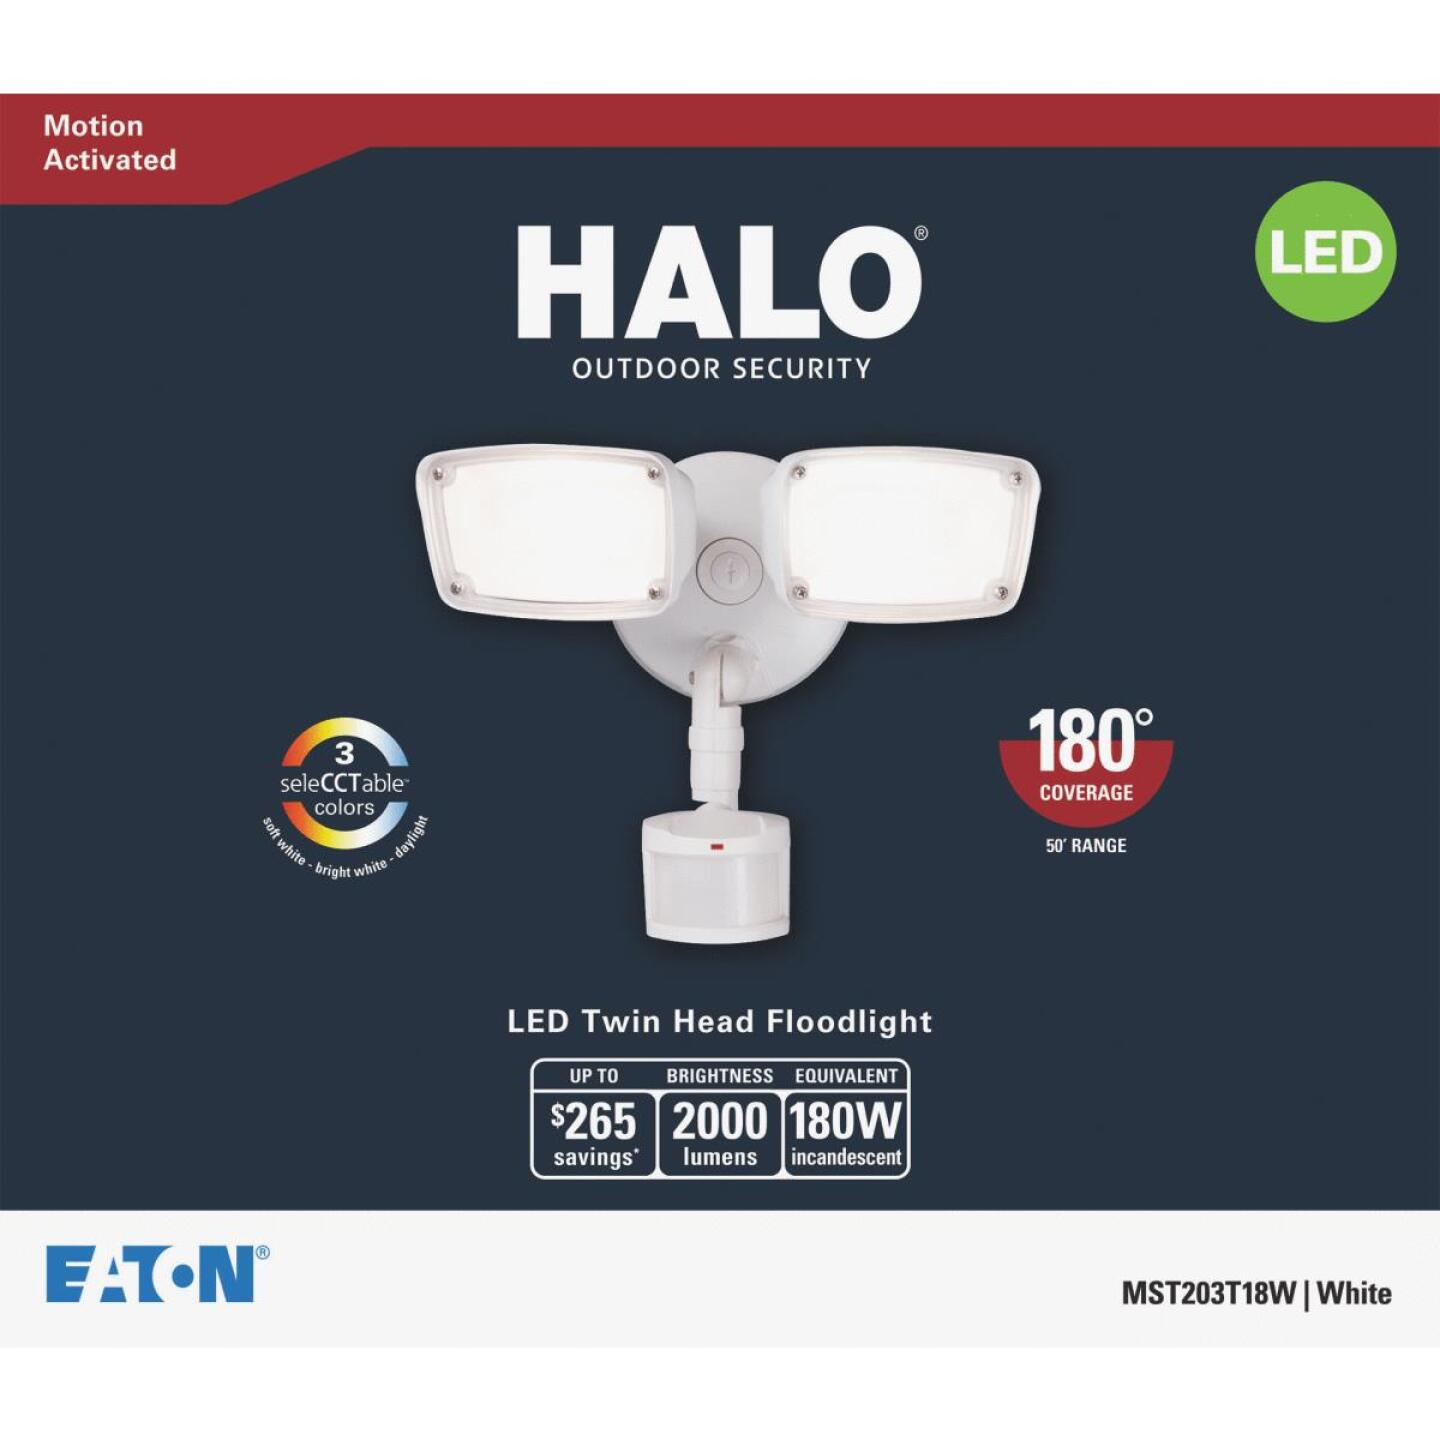 Halo White Motion Sensing LED Twin Head Floodlight Fixture Image 2